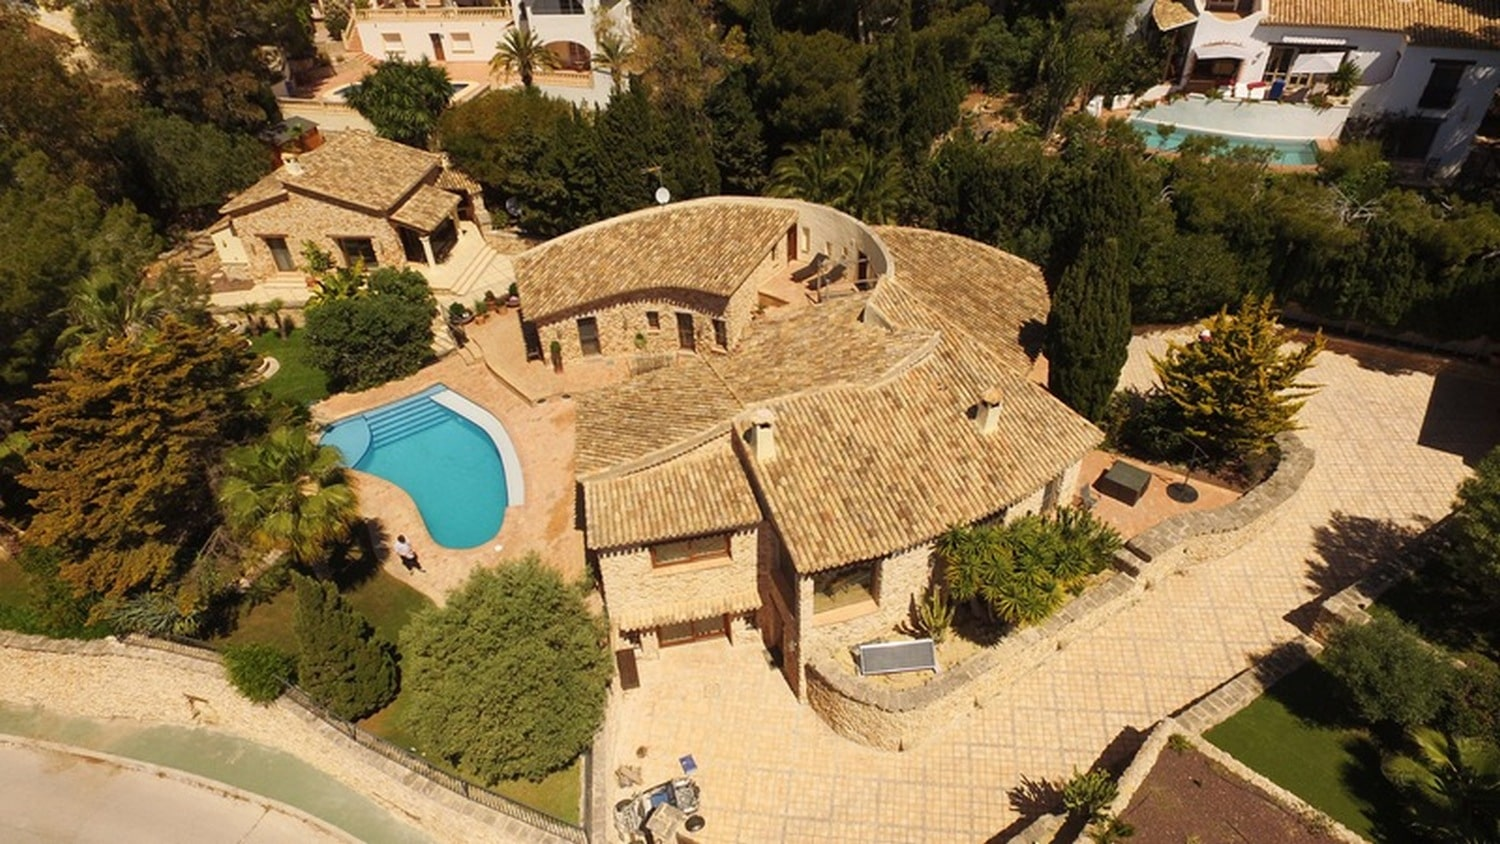 6 Bedroom Finca / Country House in Moraira